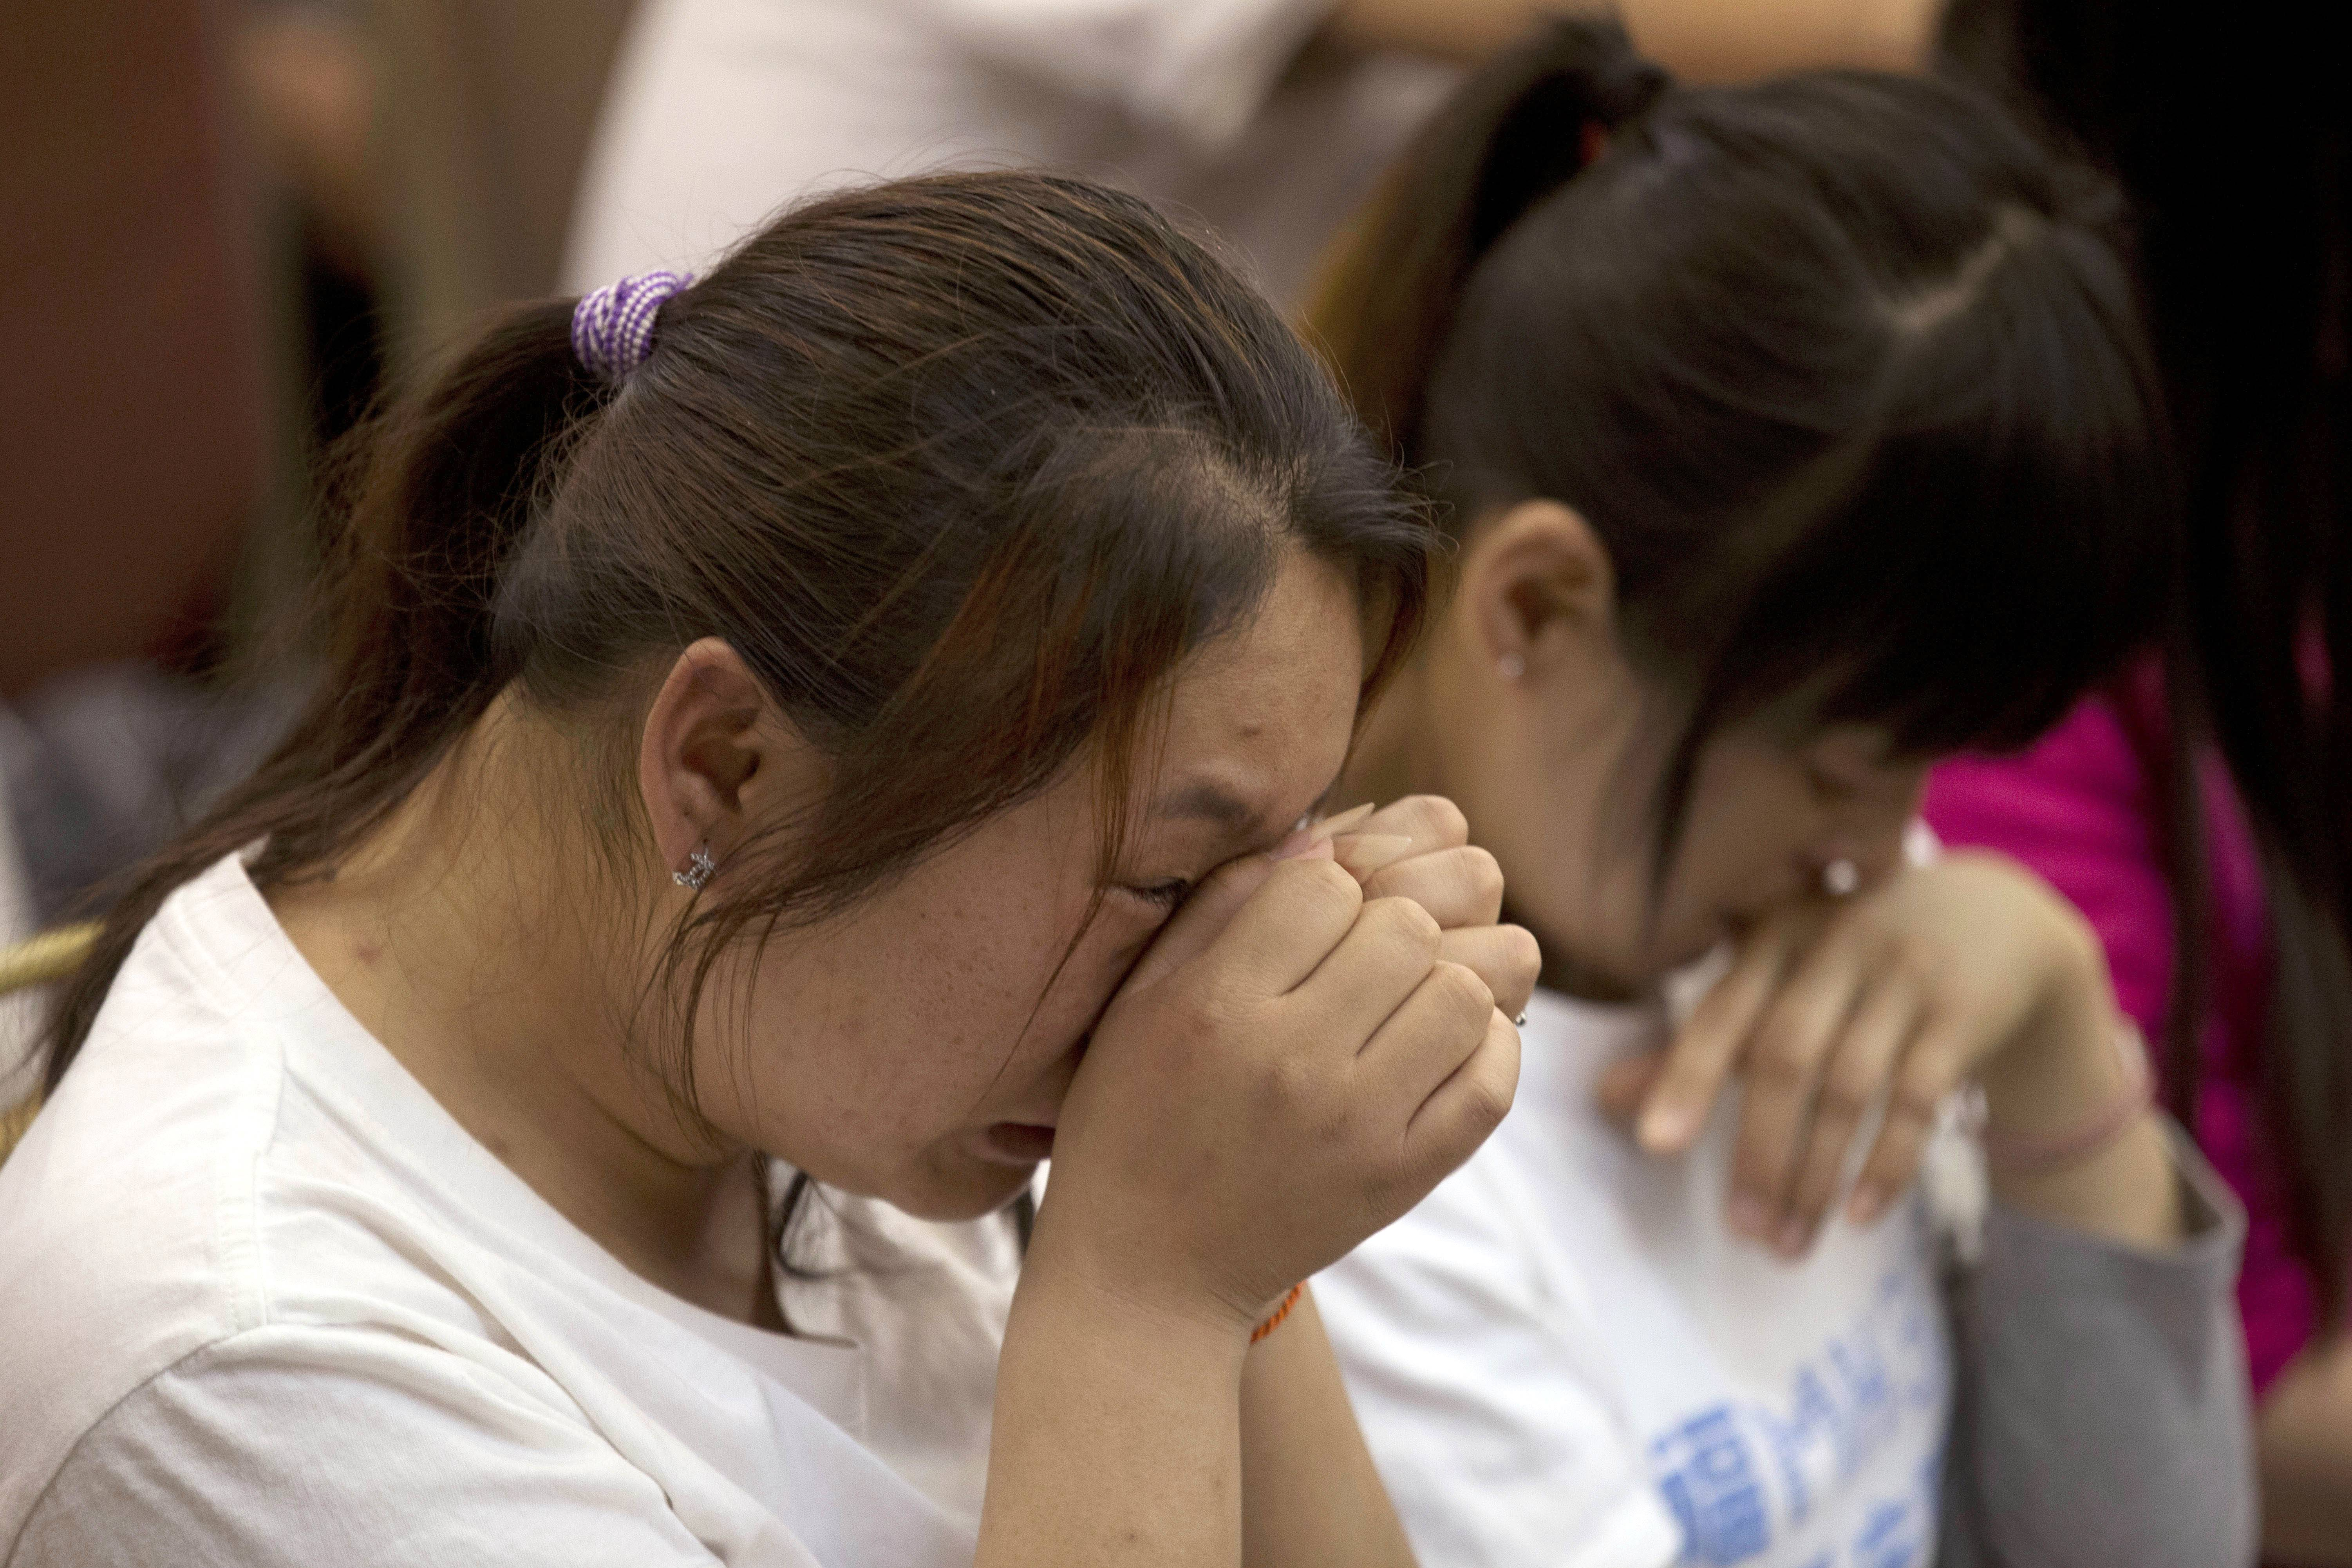 Relatives of Chinese passengers onboard the Malaysia Airlines Flight 370, cry during a meeting in Beijing Monday, April 21, 2014.